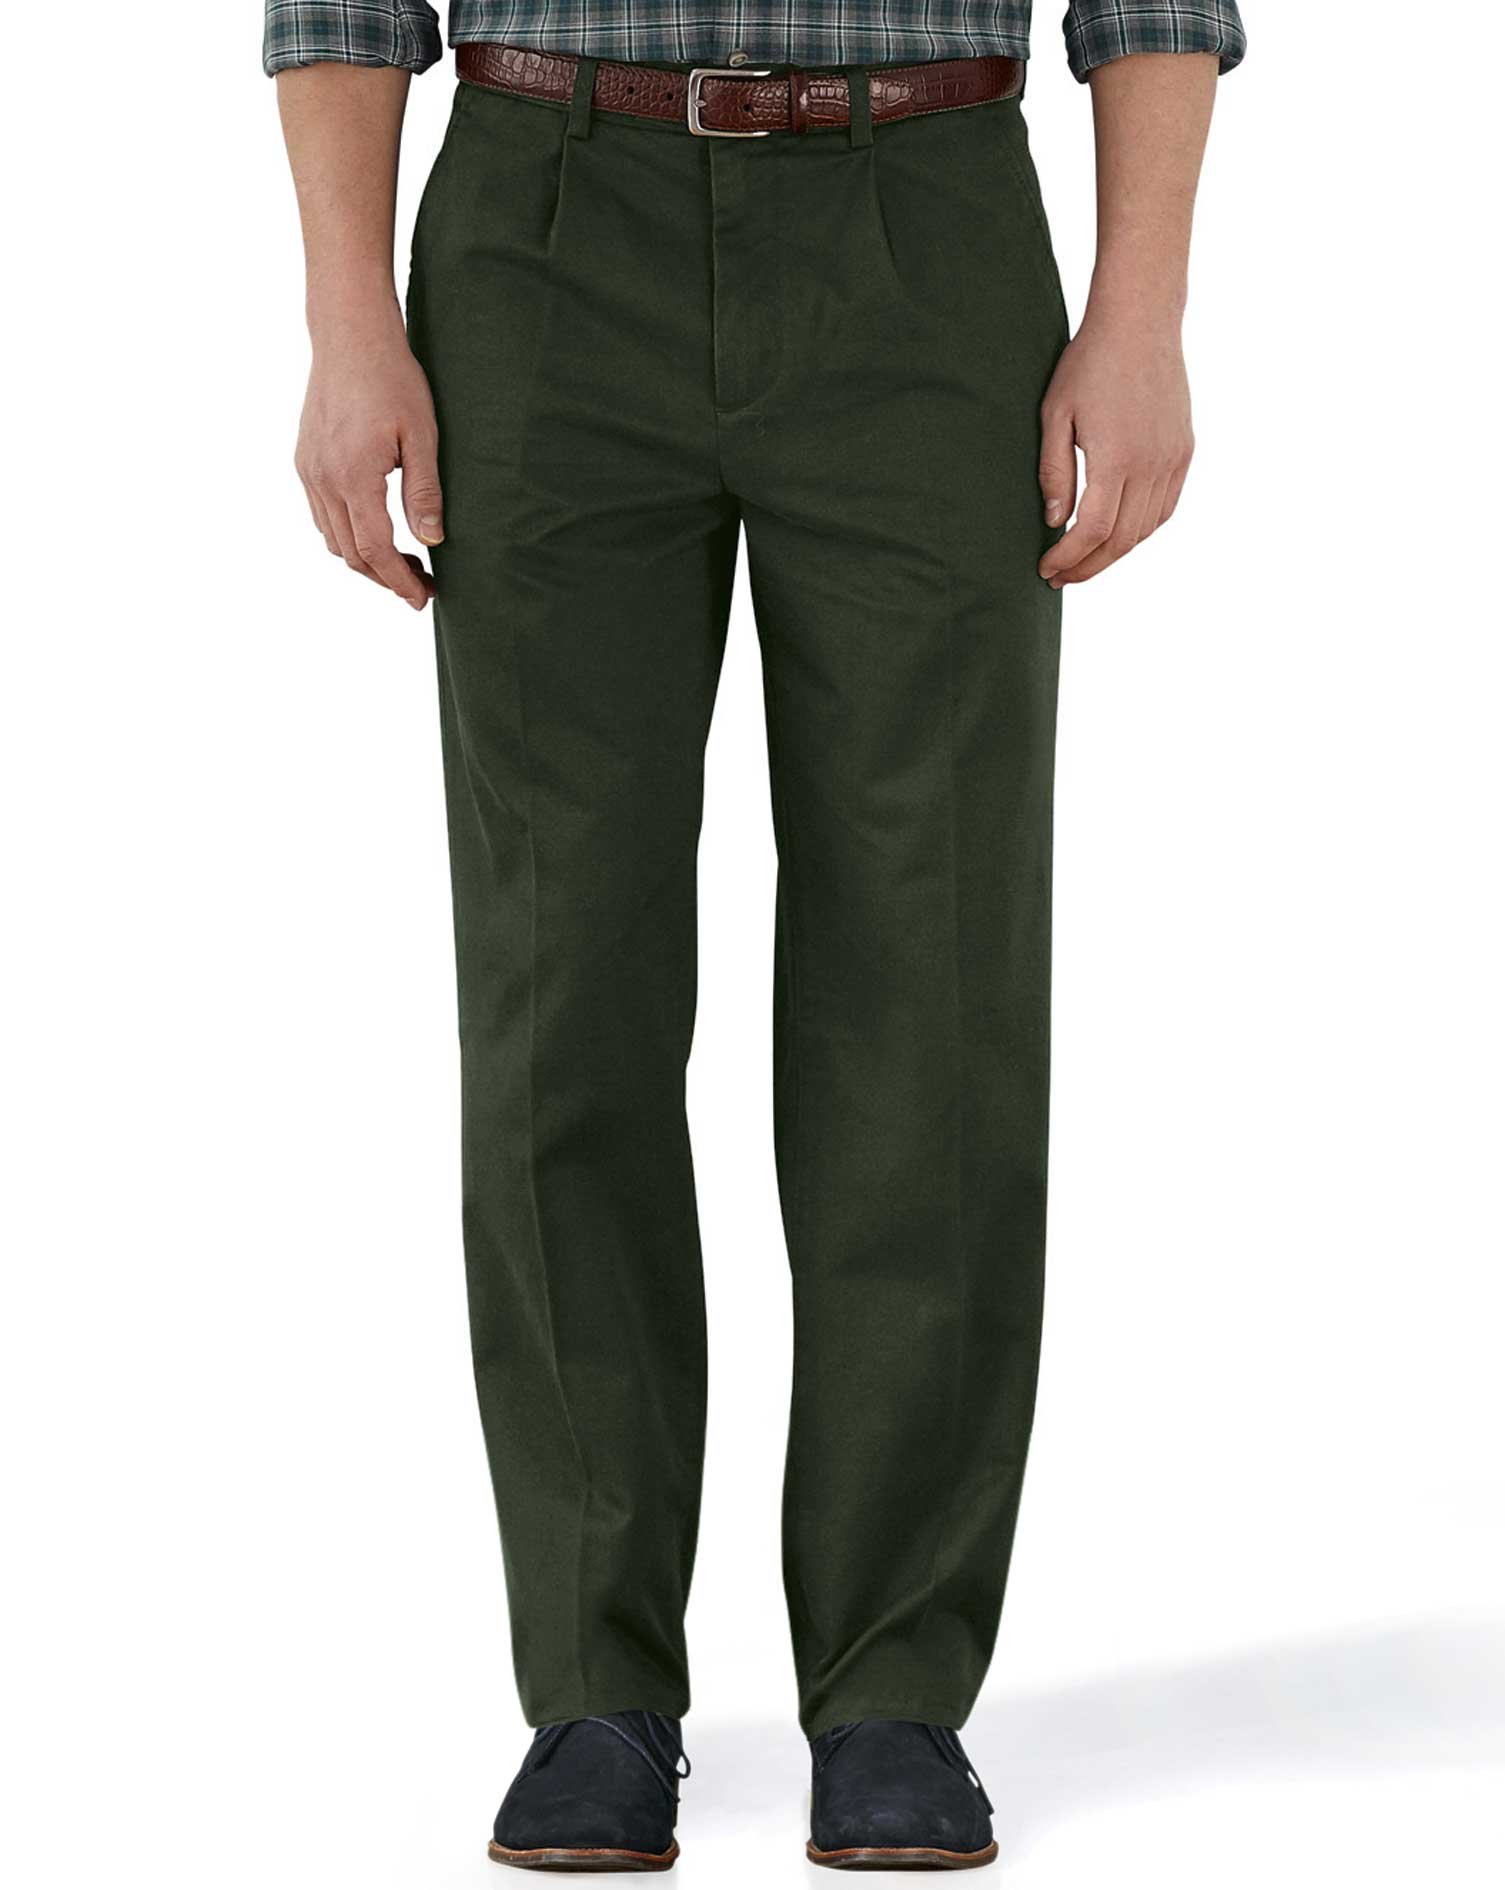 Dark Green Classic Fit Single Pleat Weekend Cotton Chino Trousers Size W36 L30 by Charles Tyrwhitt